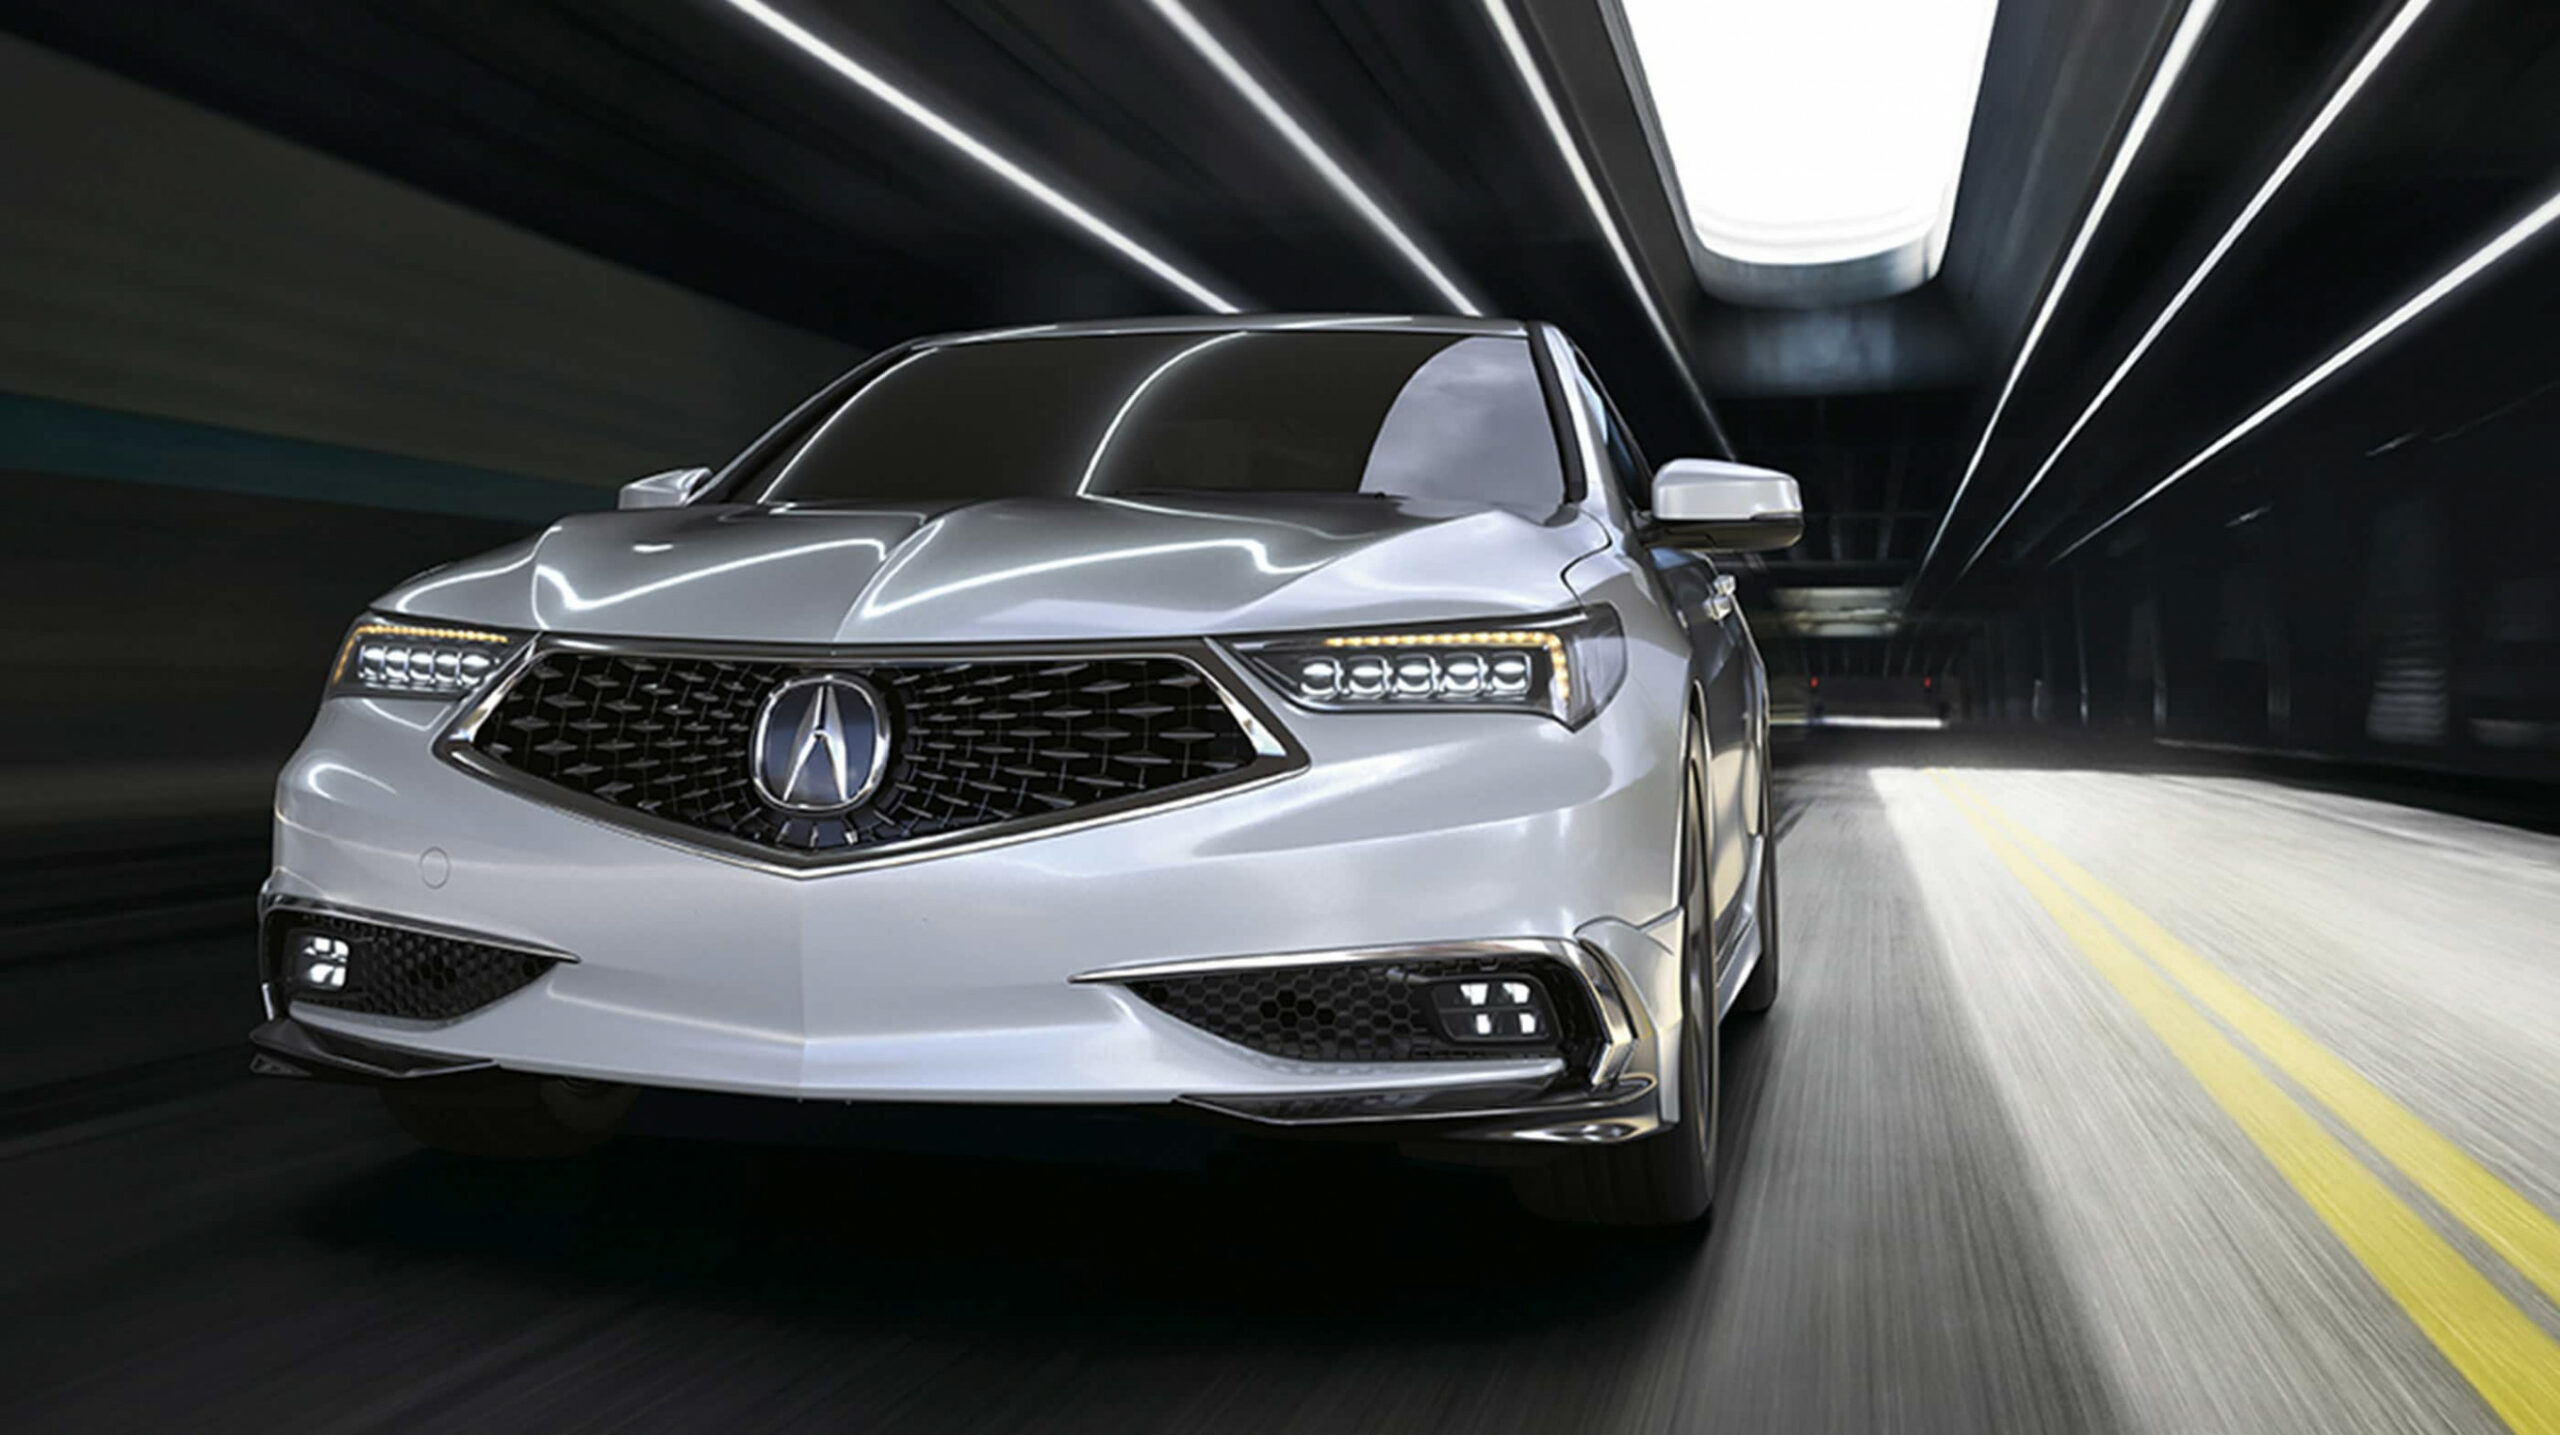 7 Acura TLX for Sale near Orland Park, IL